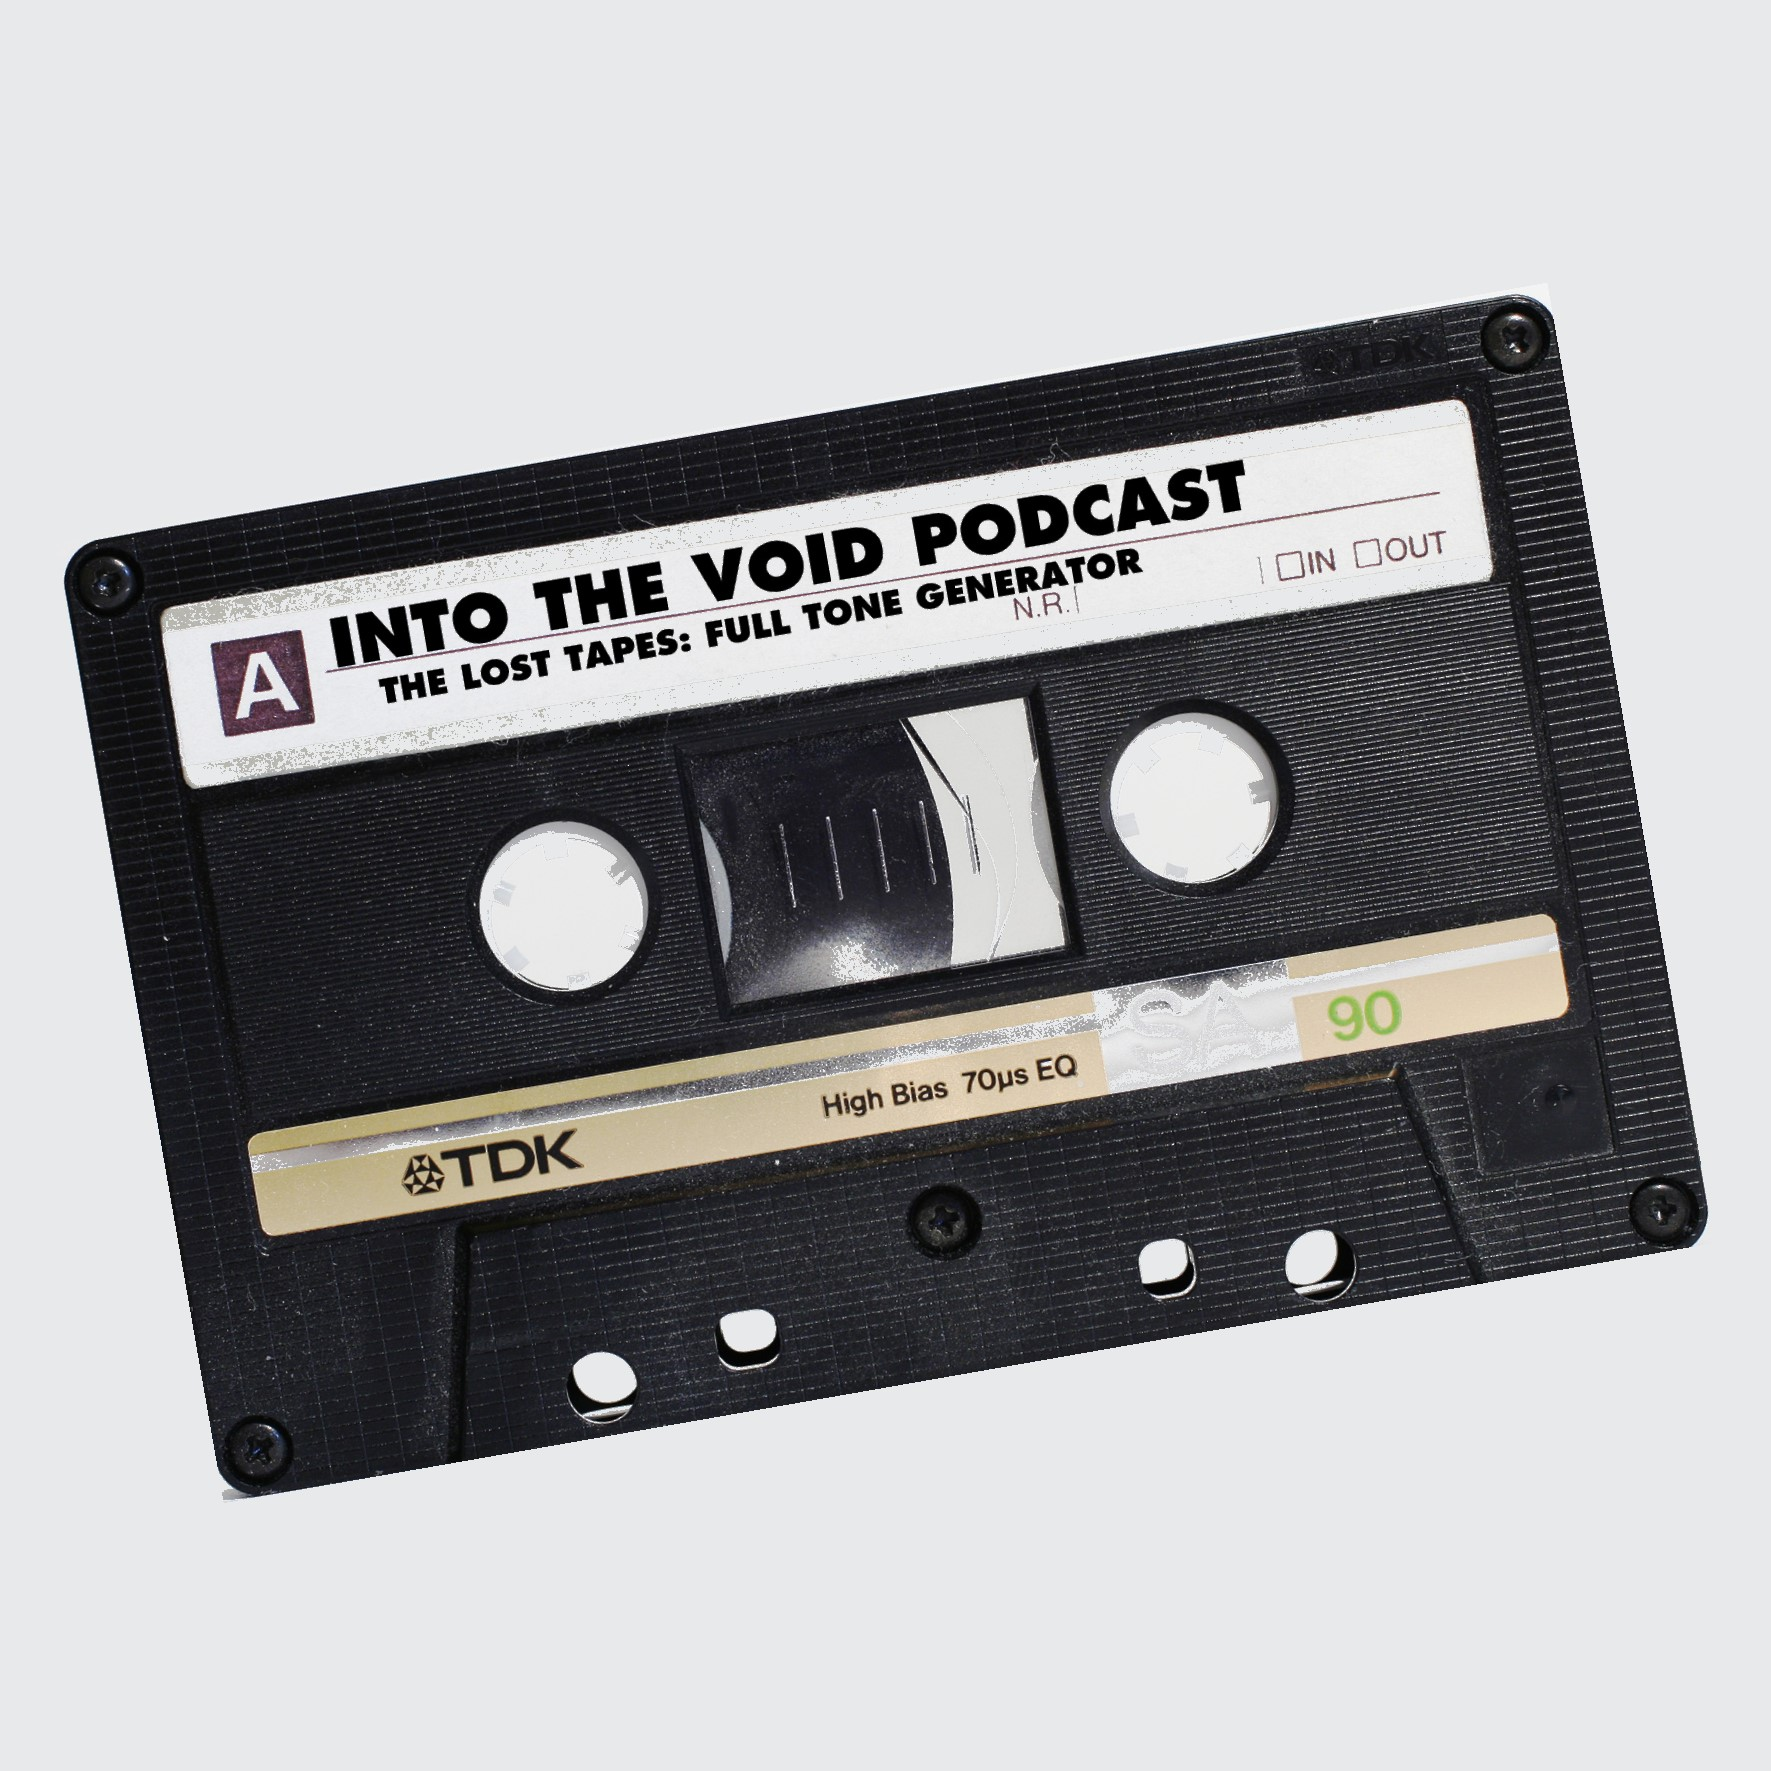 Into The Void Podcast - The Lost Tapes: Full Tone Generator